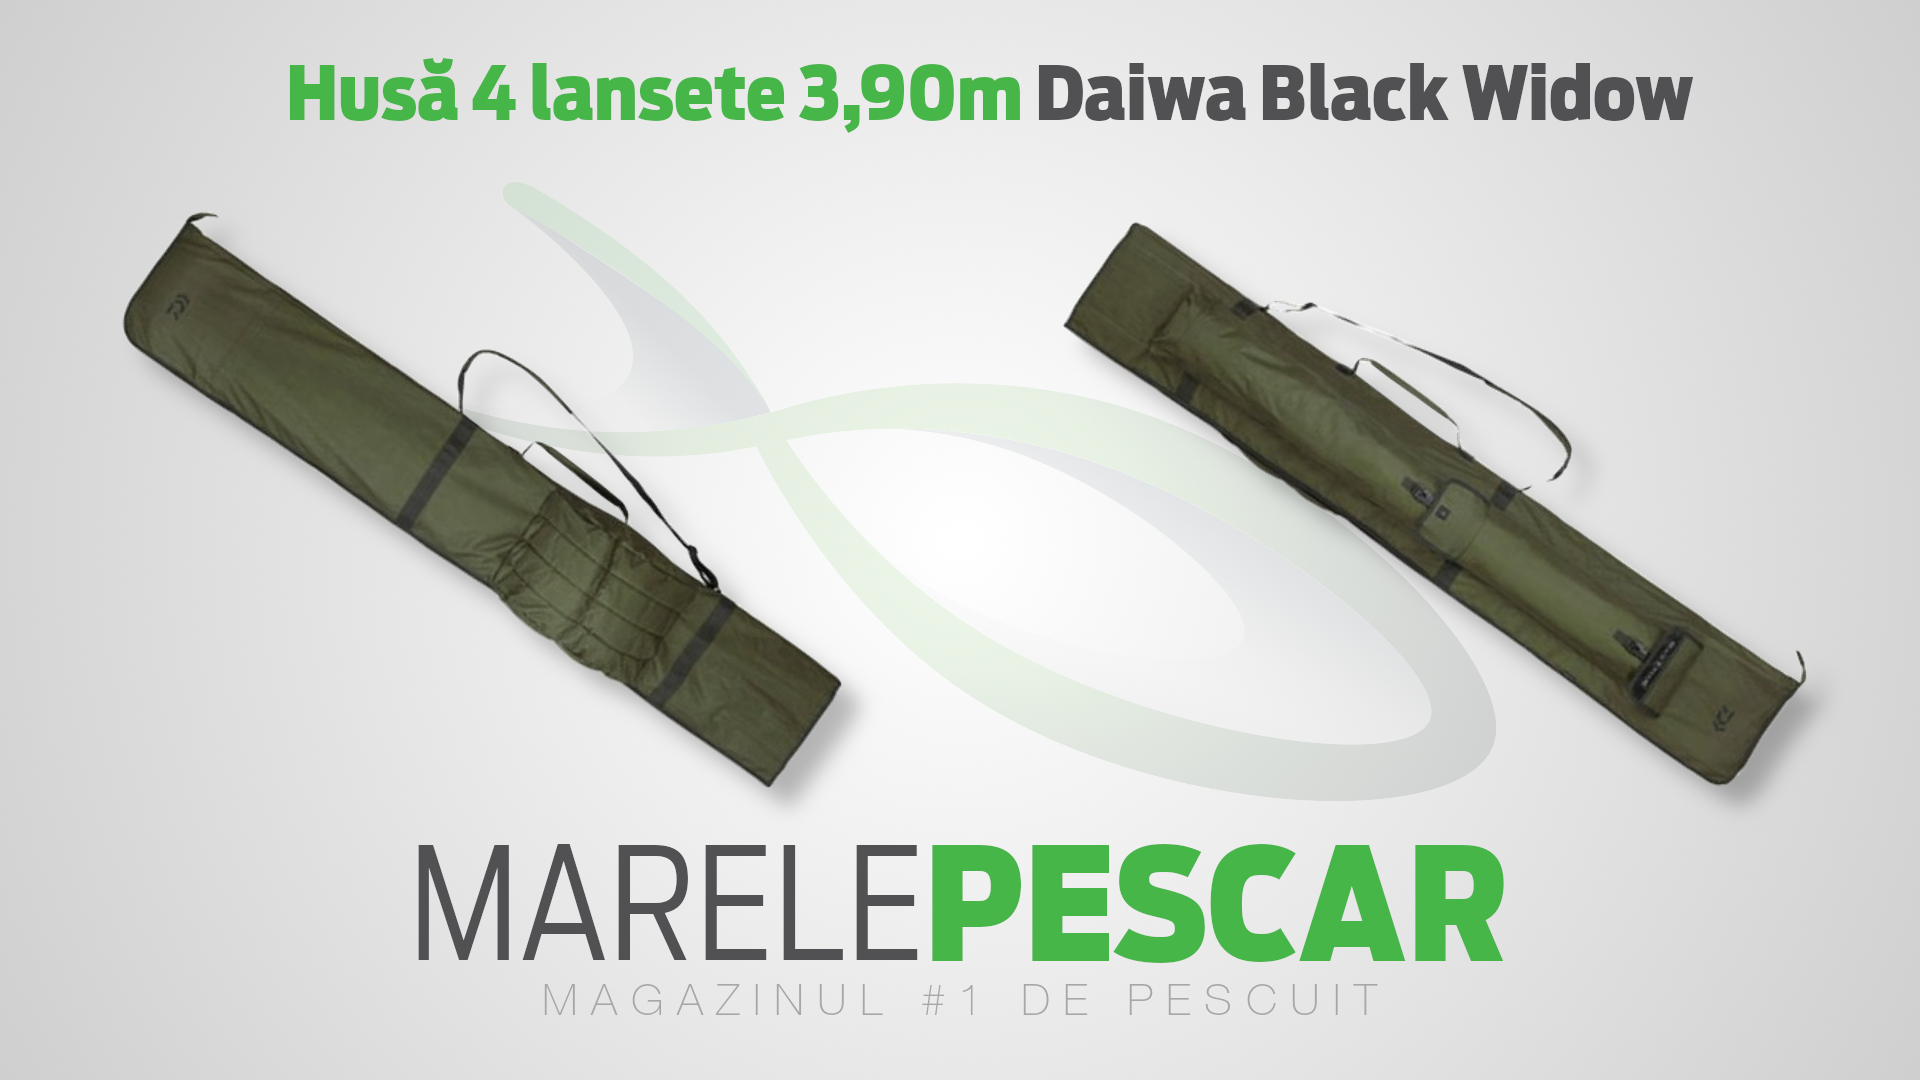 Husă 4 lansete 3,90m Daiwa Black Widow